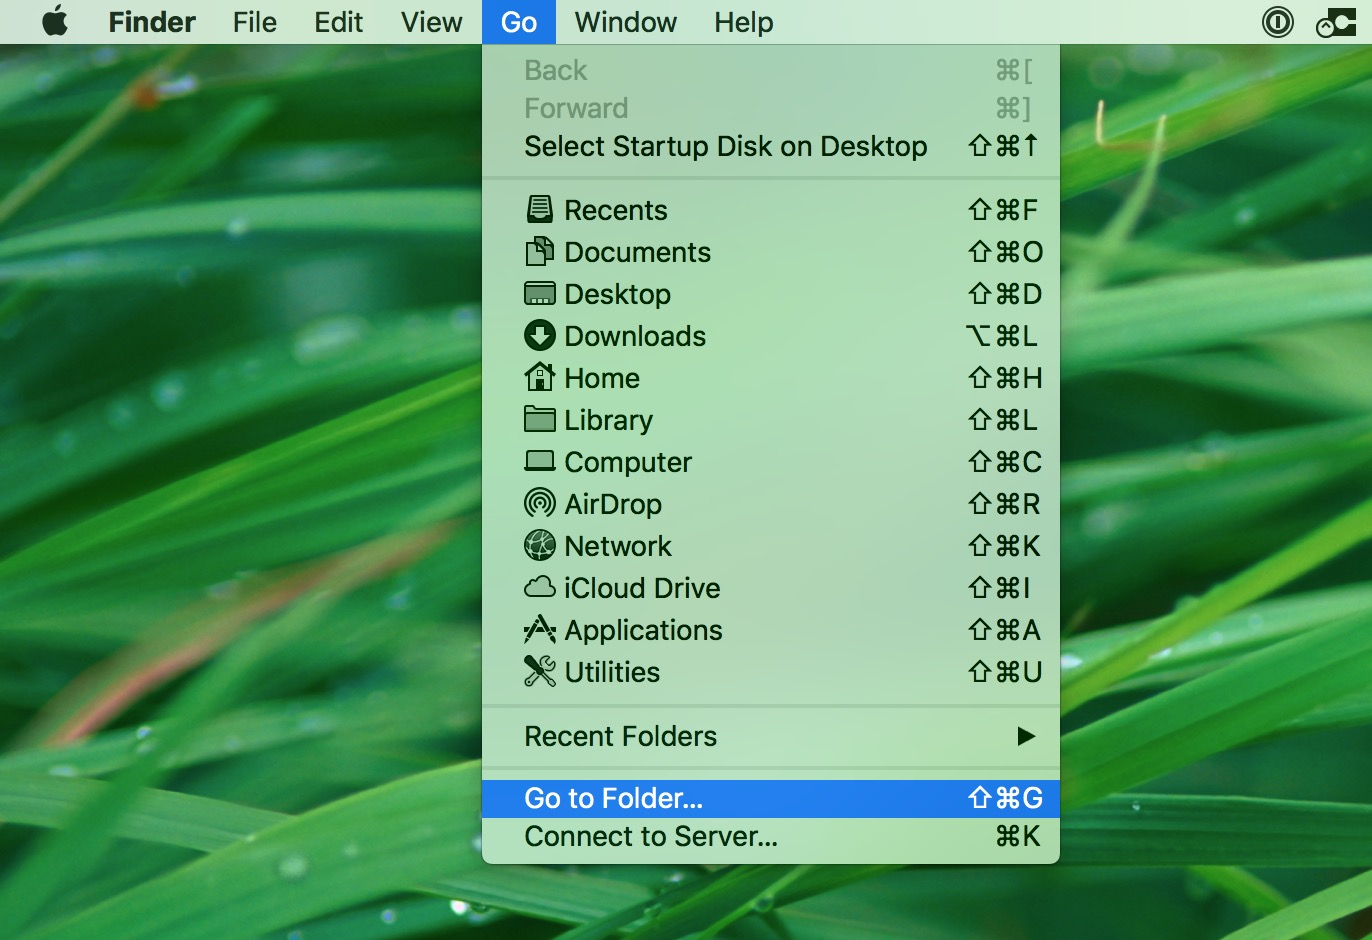 """""""Go"""" Menu in Finder in macOS for going to specific locations on your Mac"""